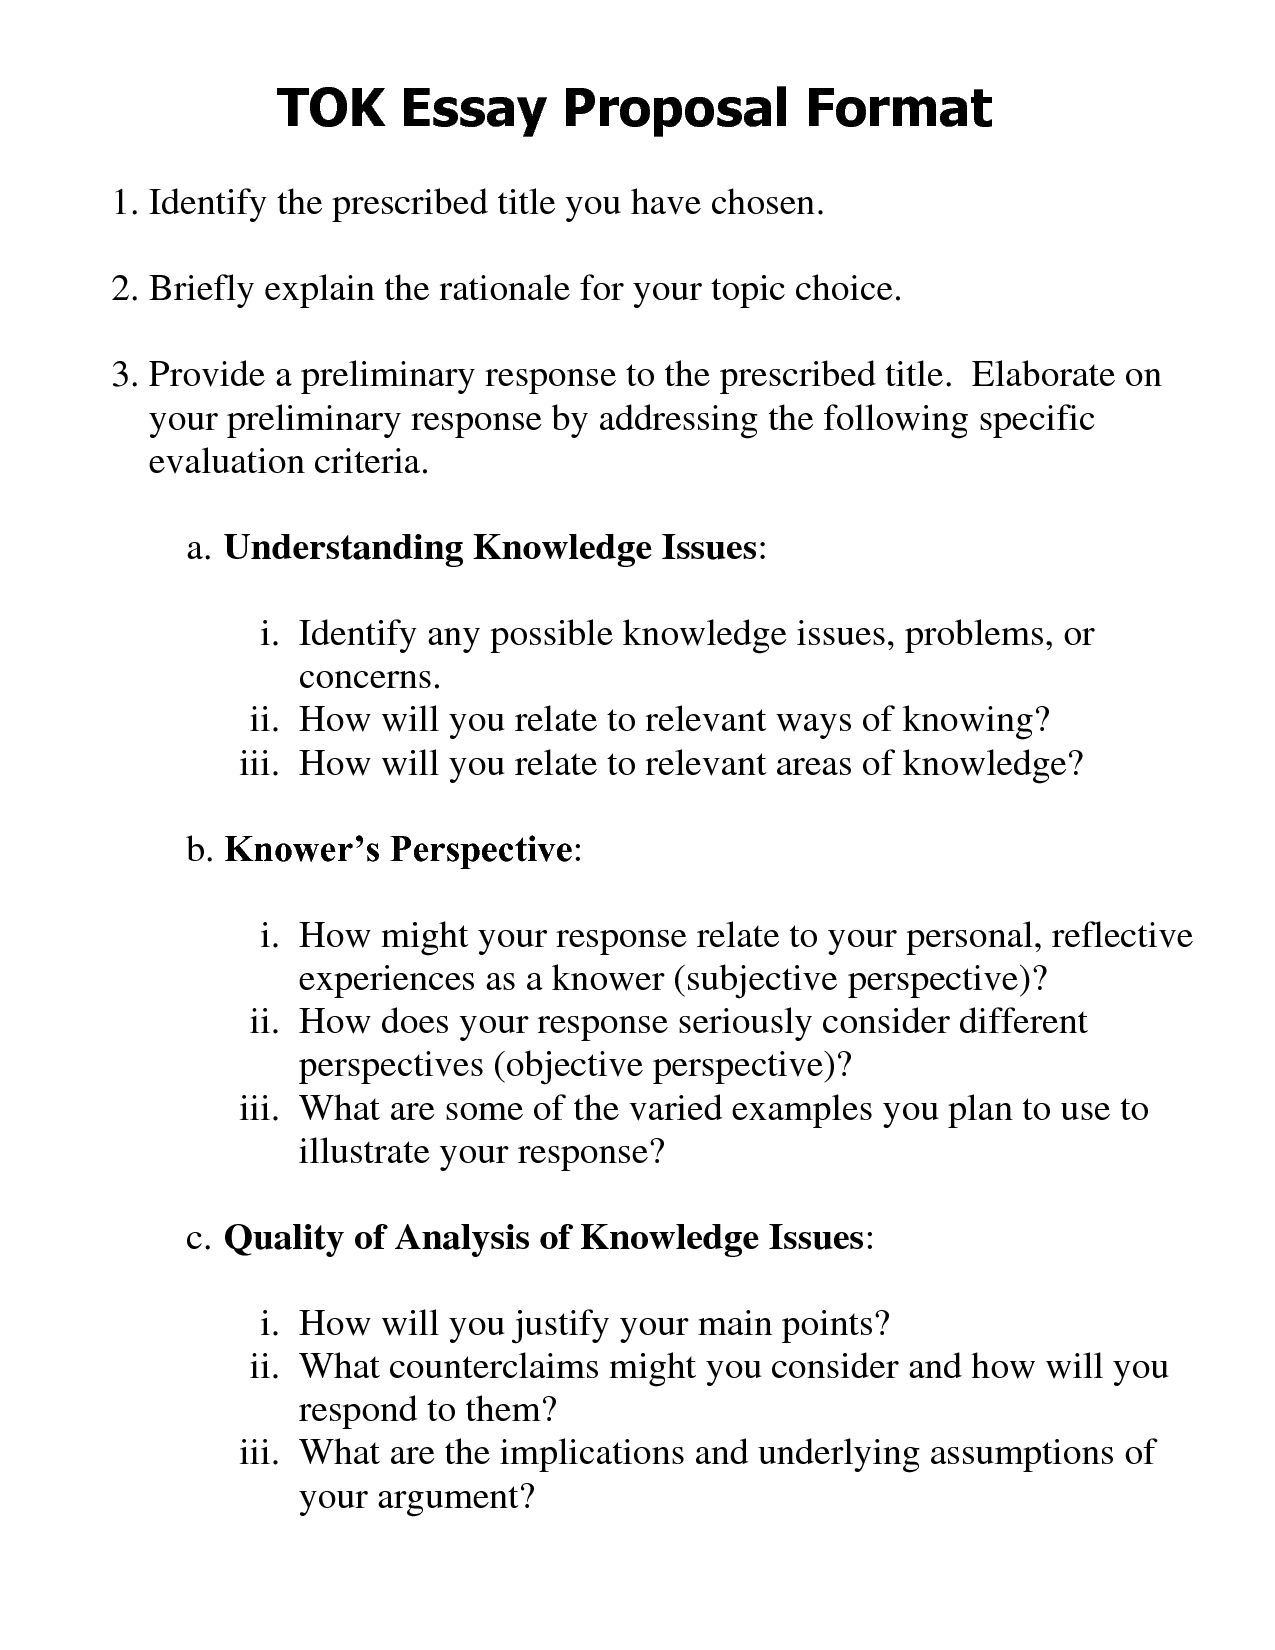 Position Paper Essay  Persuasive Essays For High School also Topics For A Proposal Essay How To Write An Essay Proposal Best School Dissertation  High School Graduation Essay